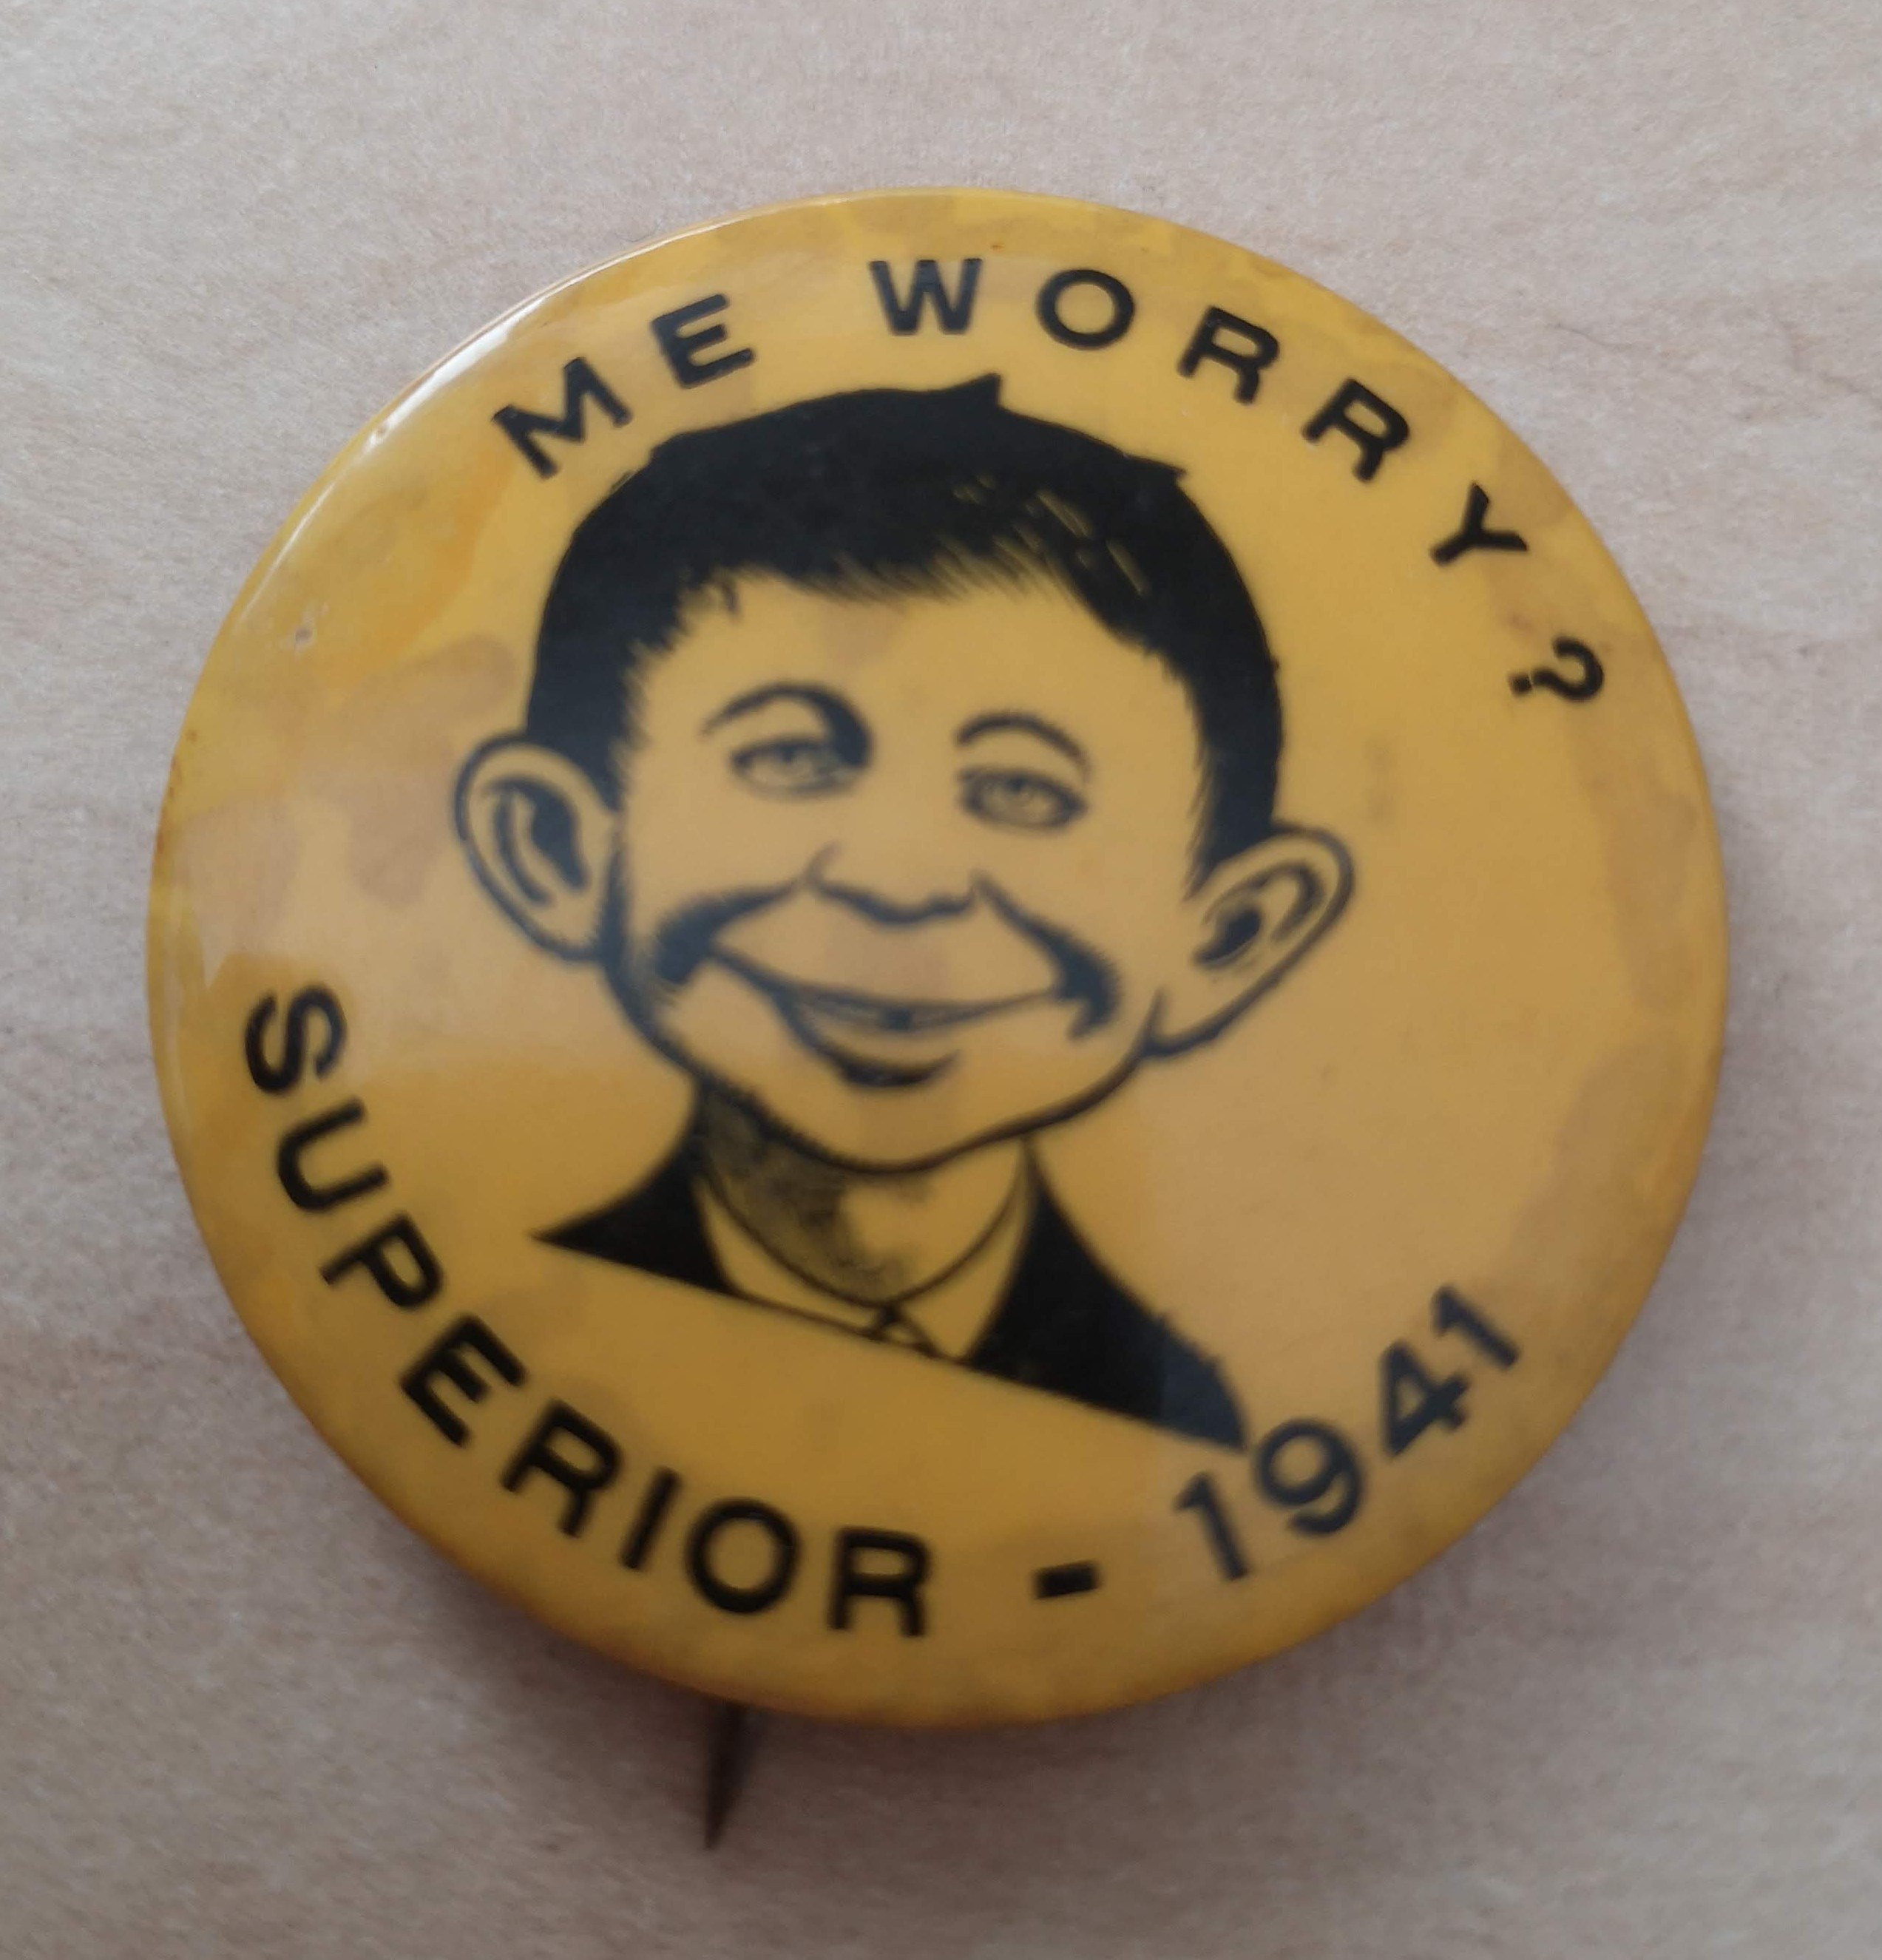 Me Worry? Superior 1941 Button